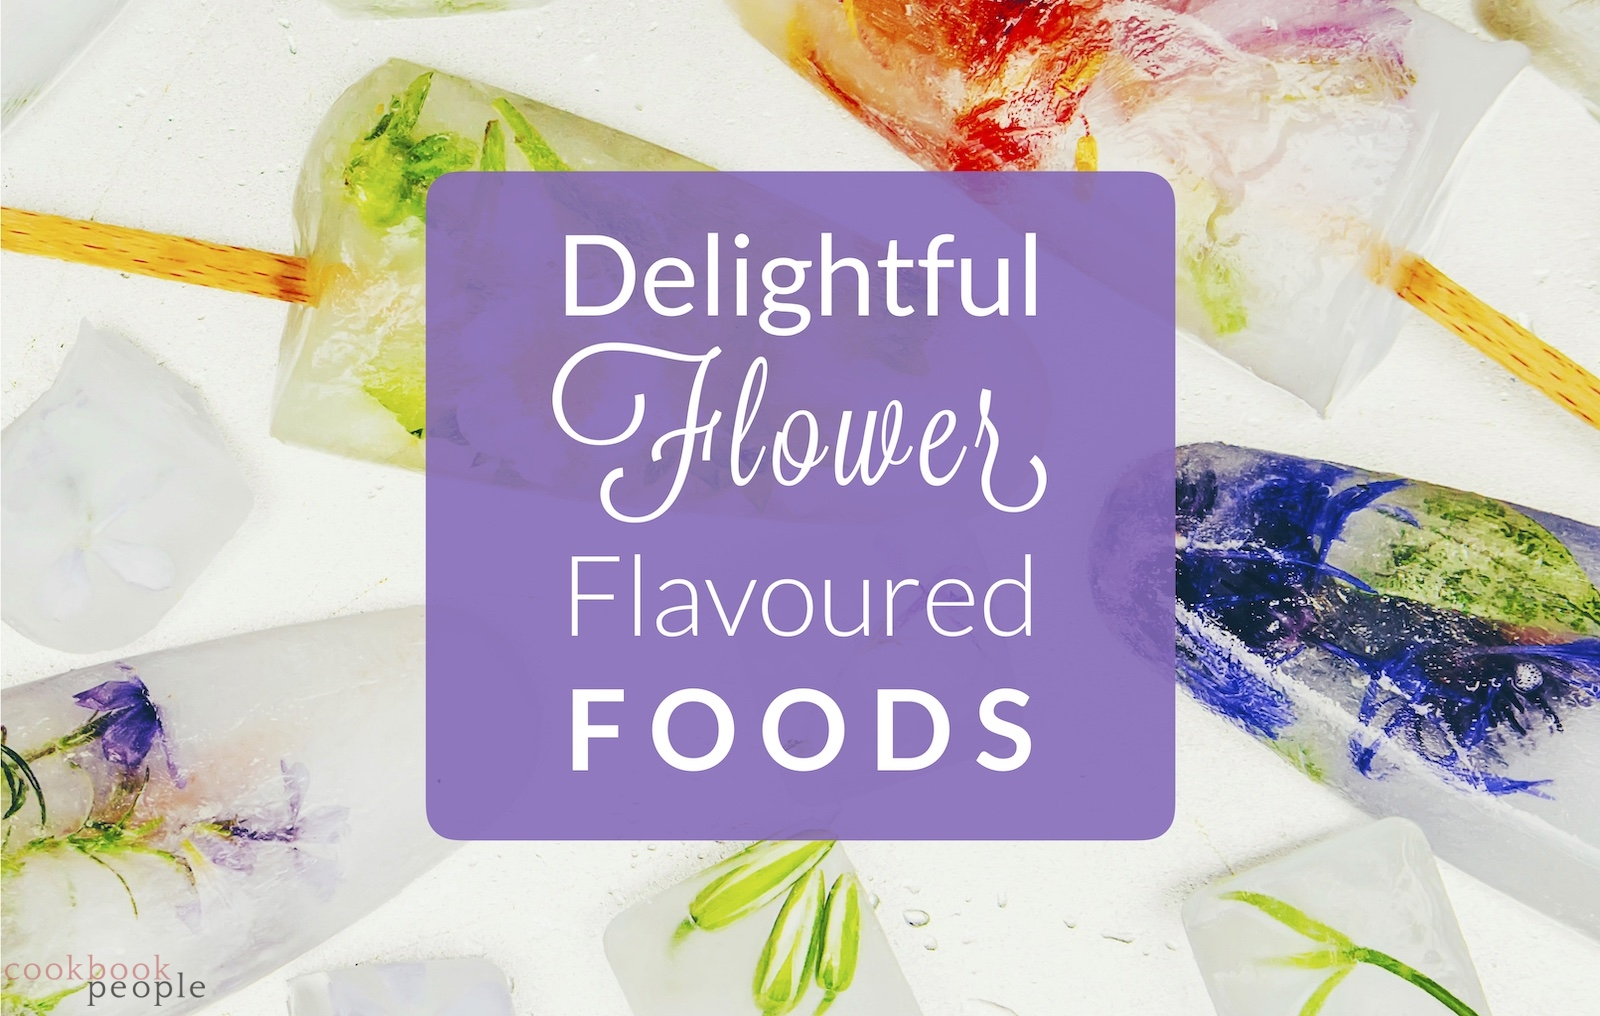 Colourful flower ice-lollies overlaid with text: Delightful Flower Flavored Foods